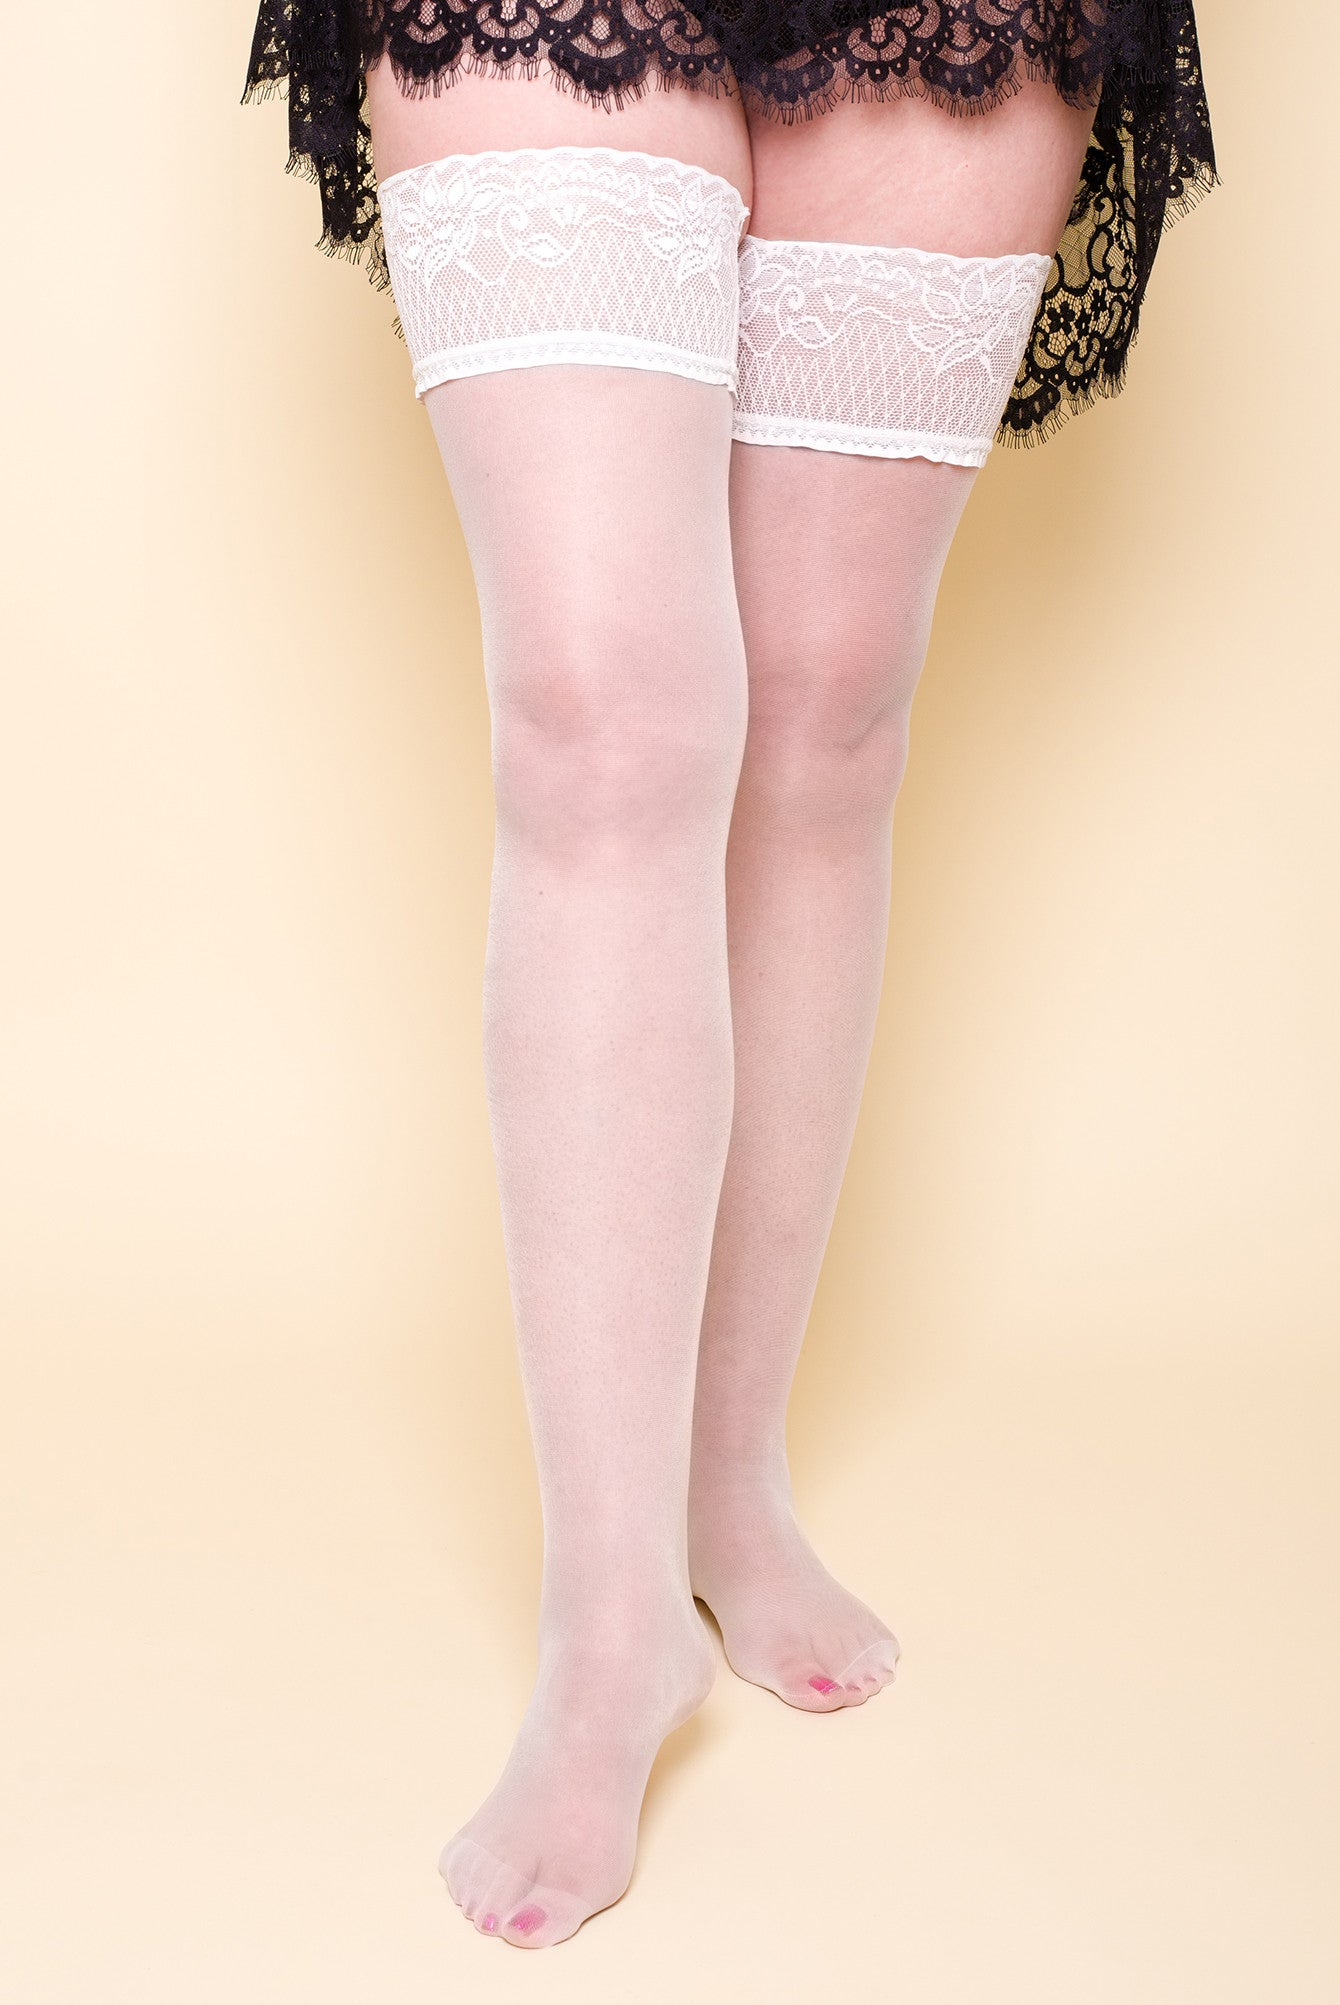 PINSTRIPE WHITE PLUS SIZE FRANKIE HOLD-UPS STOCKINGS